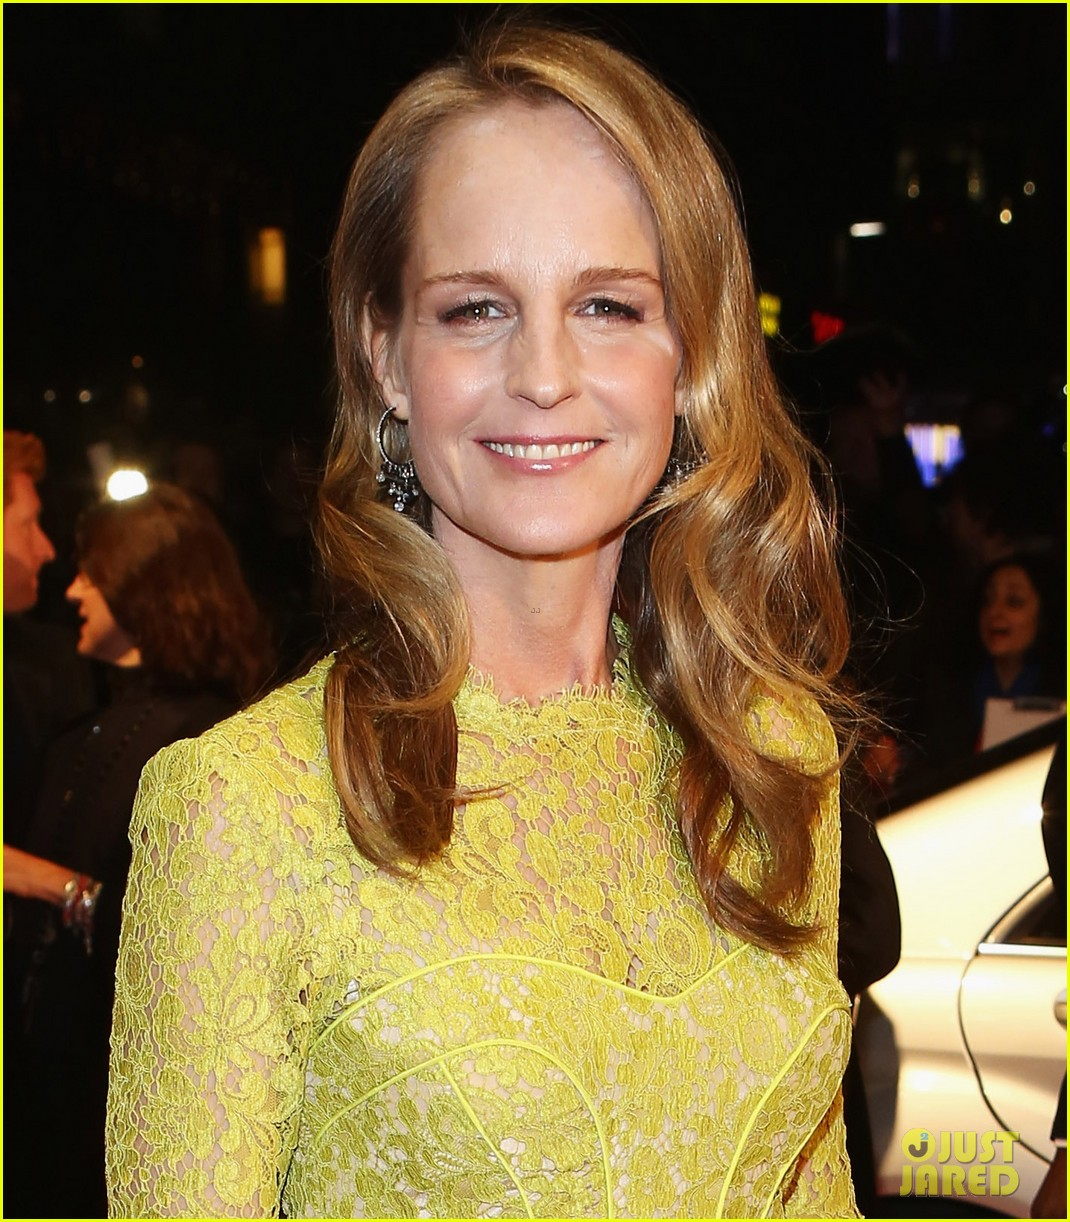 http://4.bp.blogspot.com/-VZph_2t_D8Y/UPPccZBkbfI/AAAAAAAAAb0/4R4GuEkEtok/s1600/helen-hunt-the-sessions-london-premiere-10.jpg